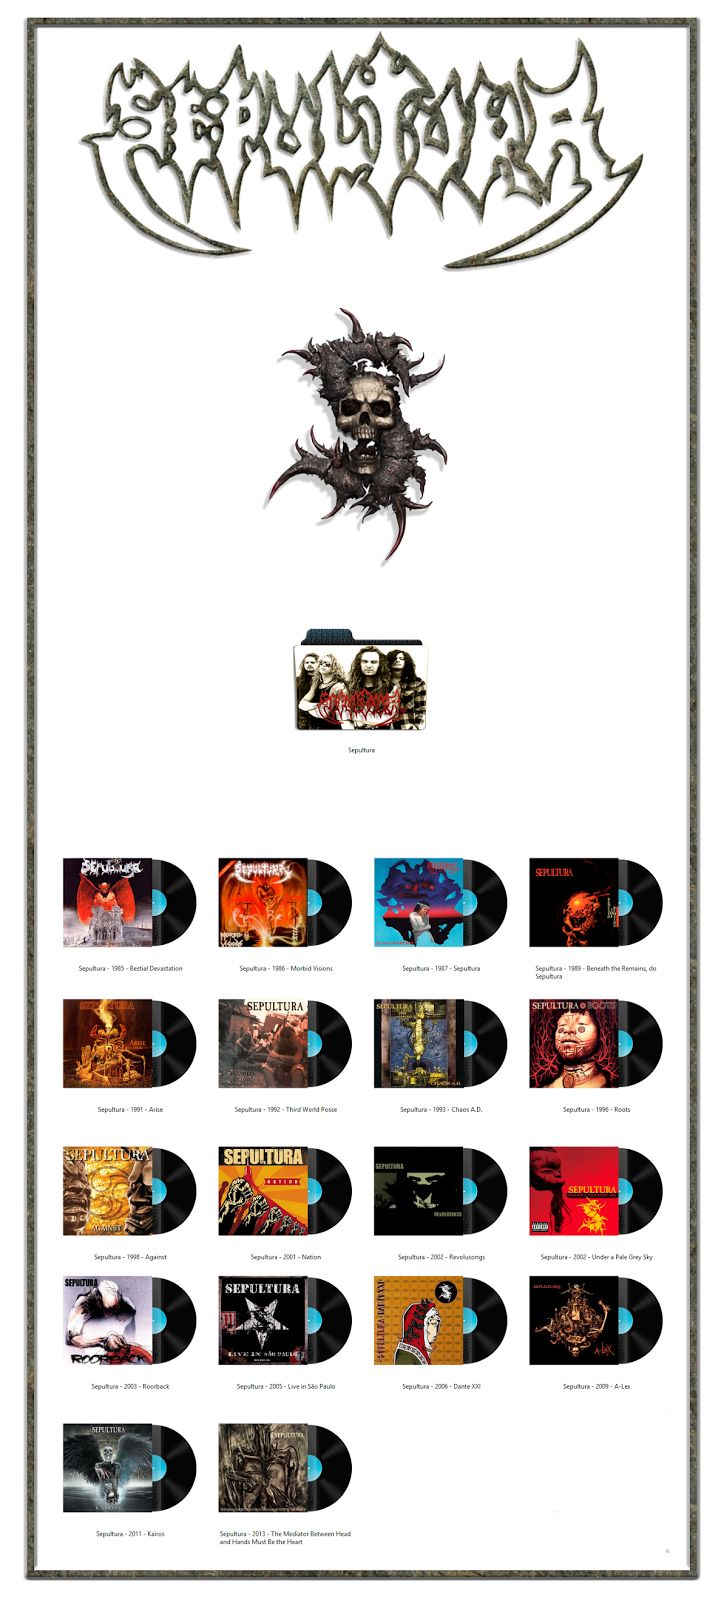 405 best sepultura images on pinterest brazil metal bands and album art icons sepultura thecheapjerseys Choice Image